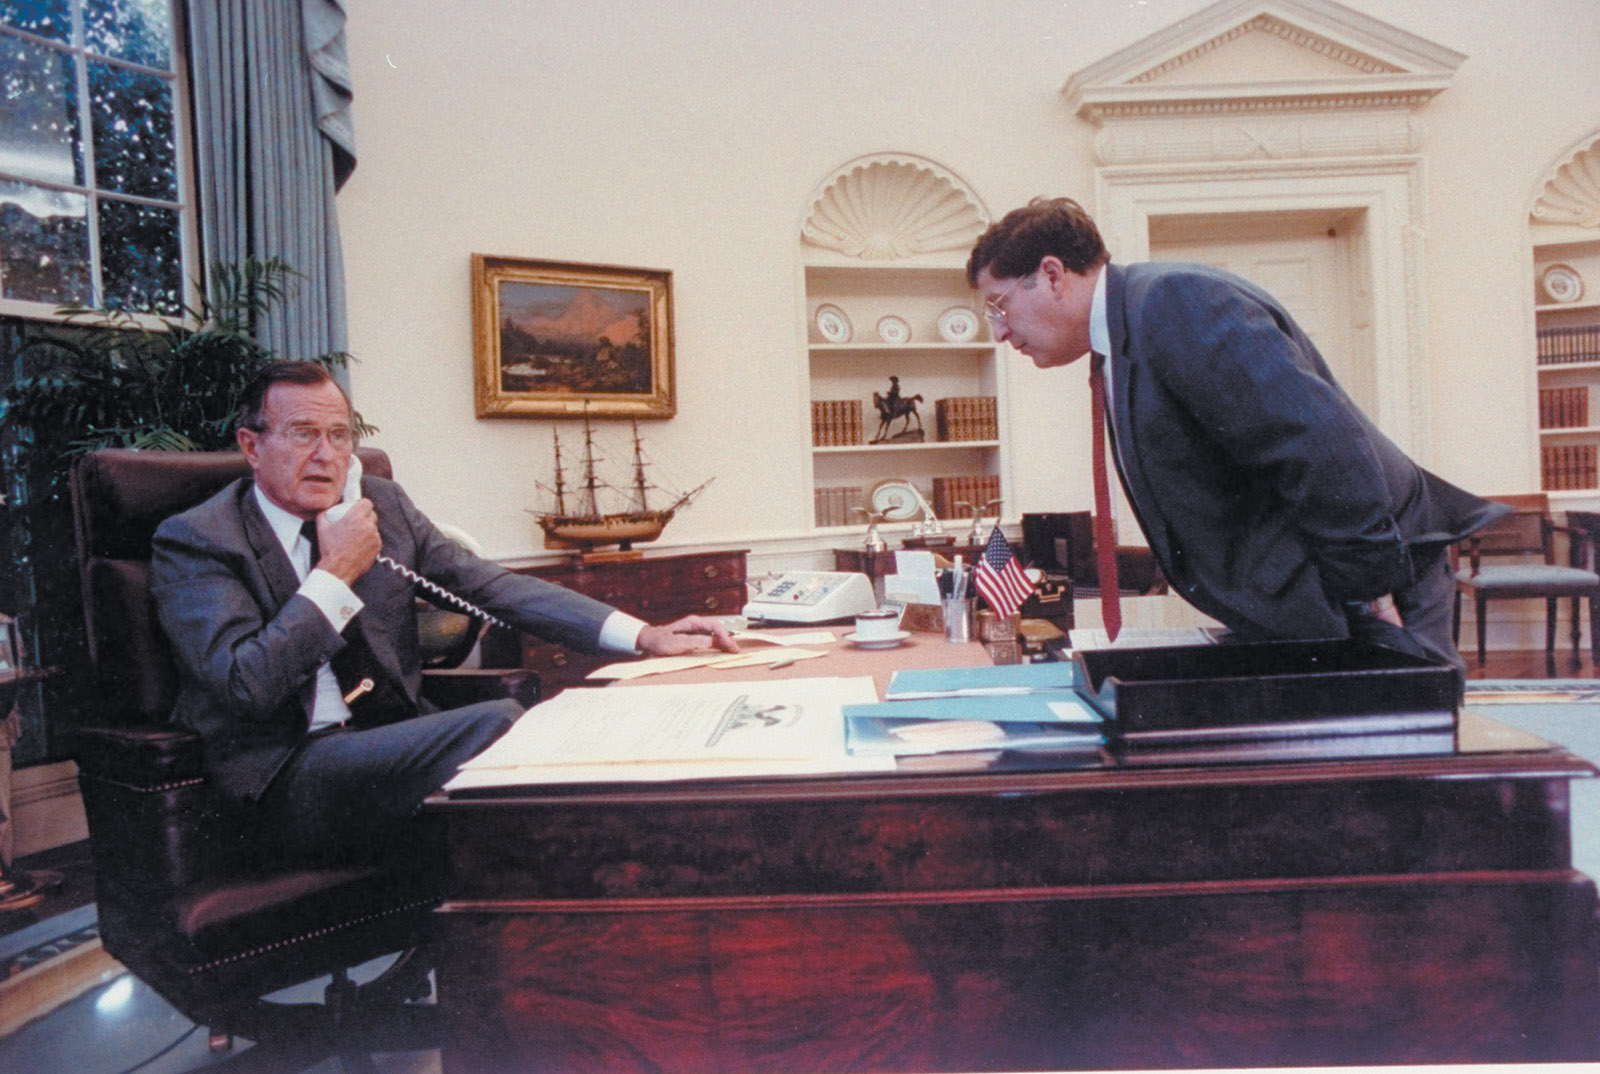 President George H.W. Bush and John Sununu, at the White House, 1990